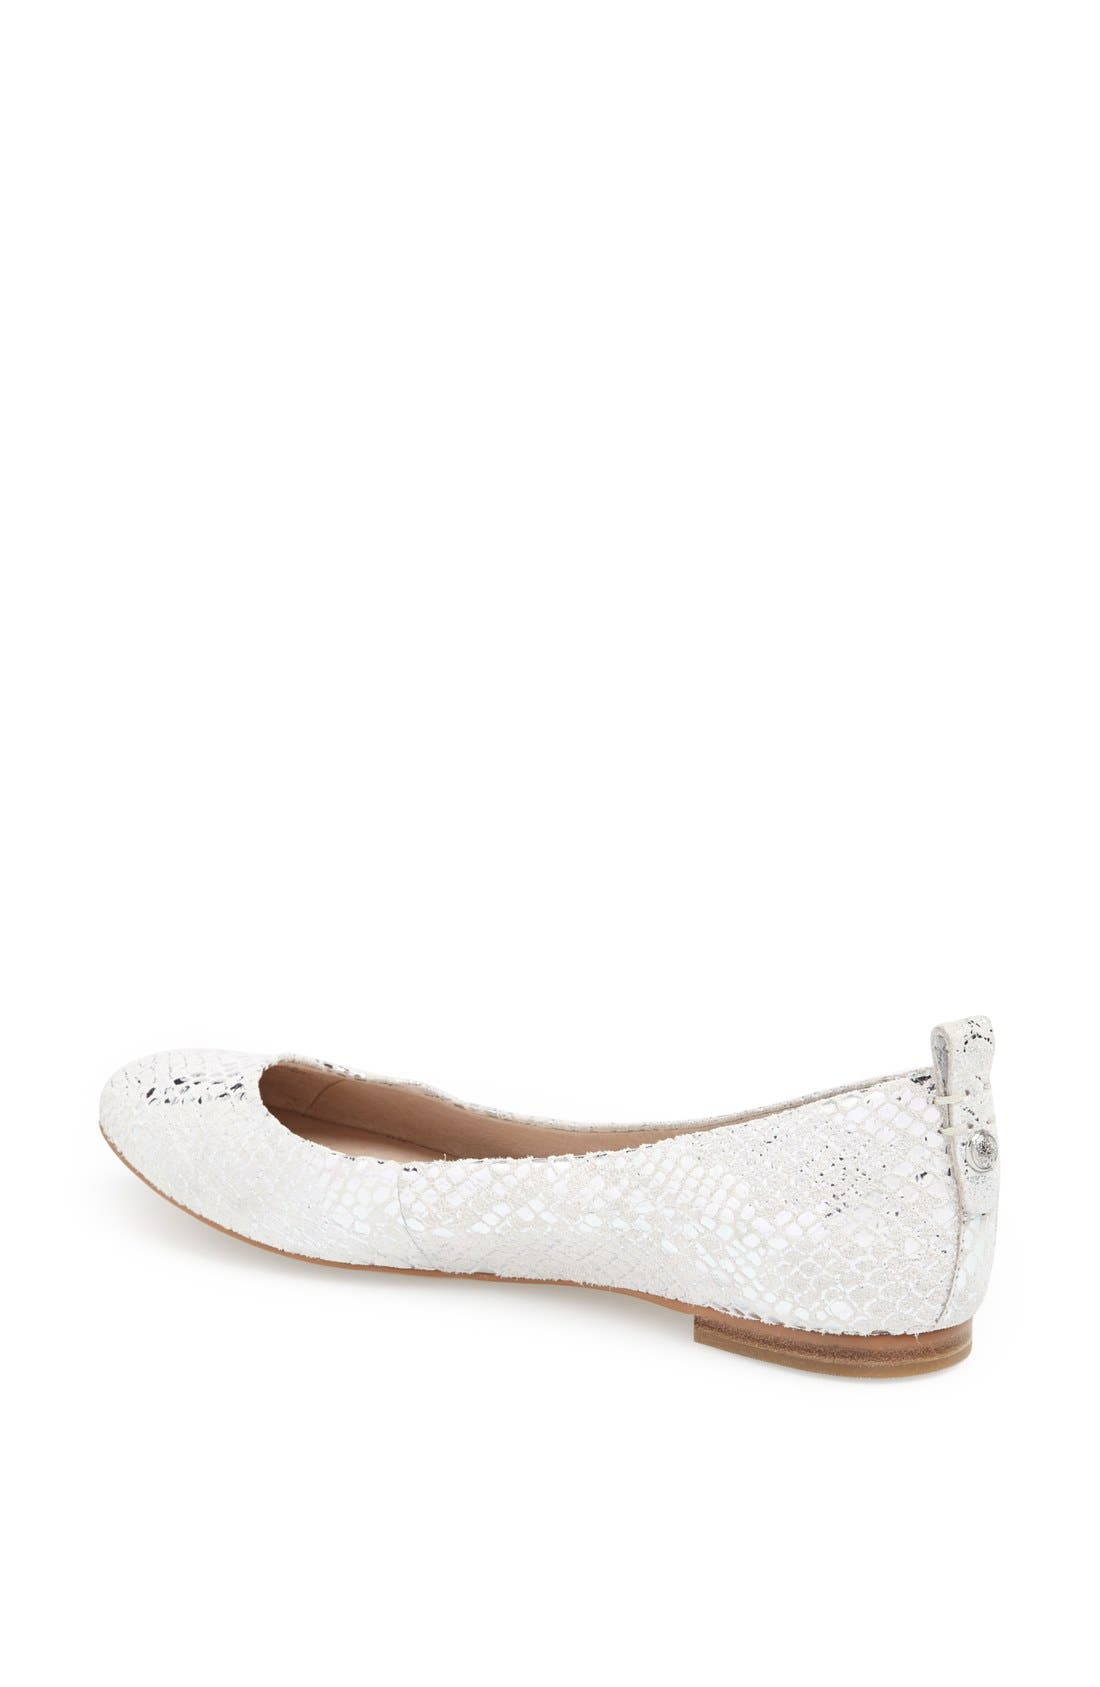 Alternate Image 2  - Vince Camuto 'Benningly' Snake Embossed Metallic Leather Ballet Flat